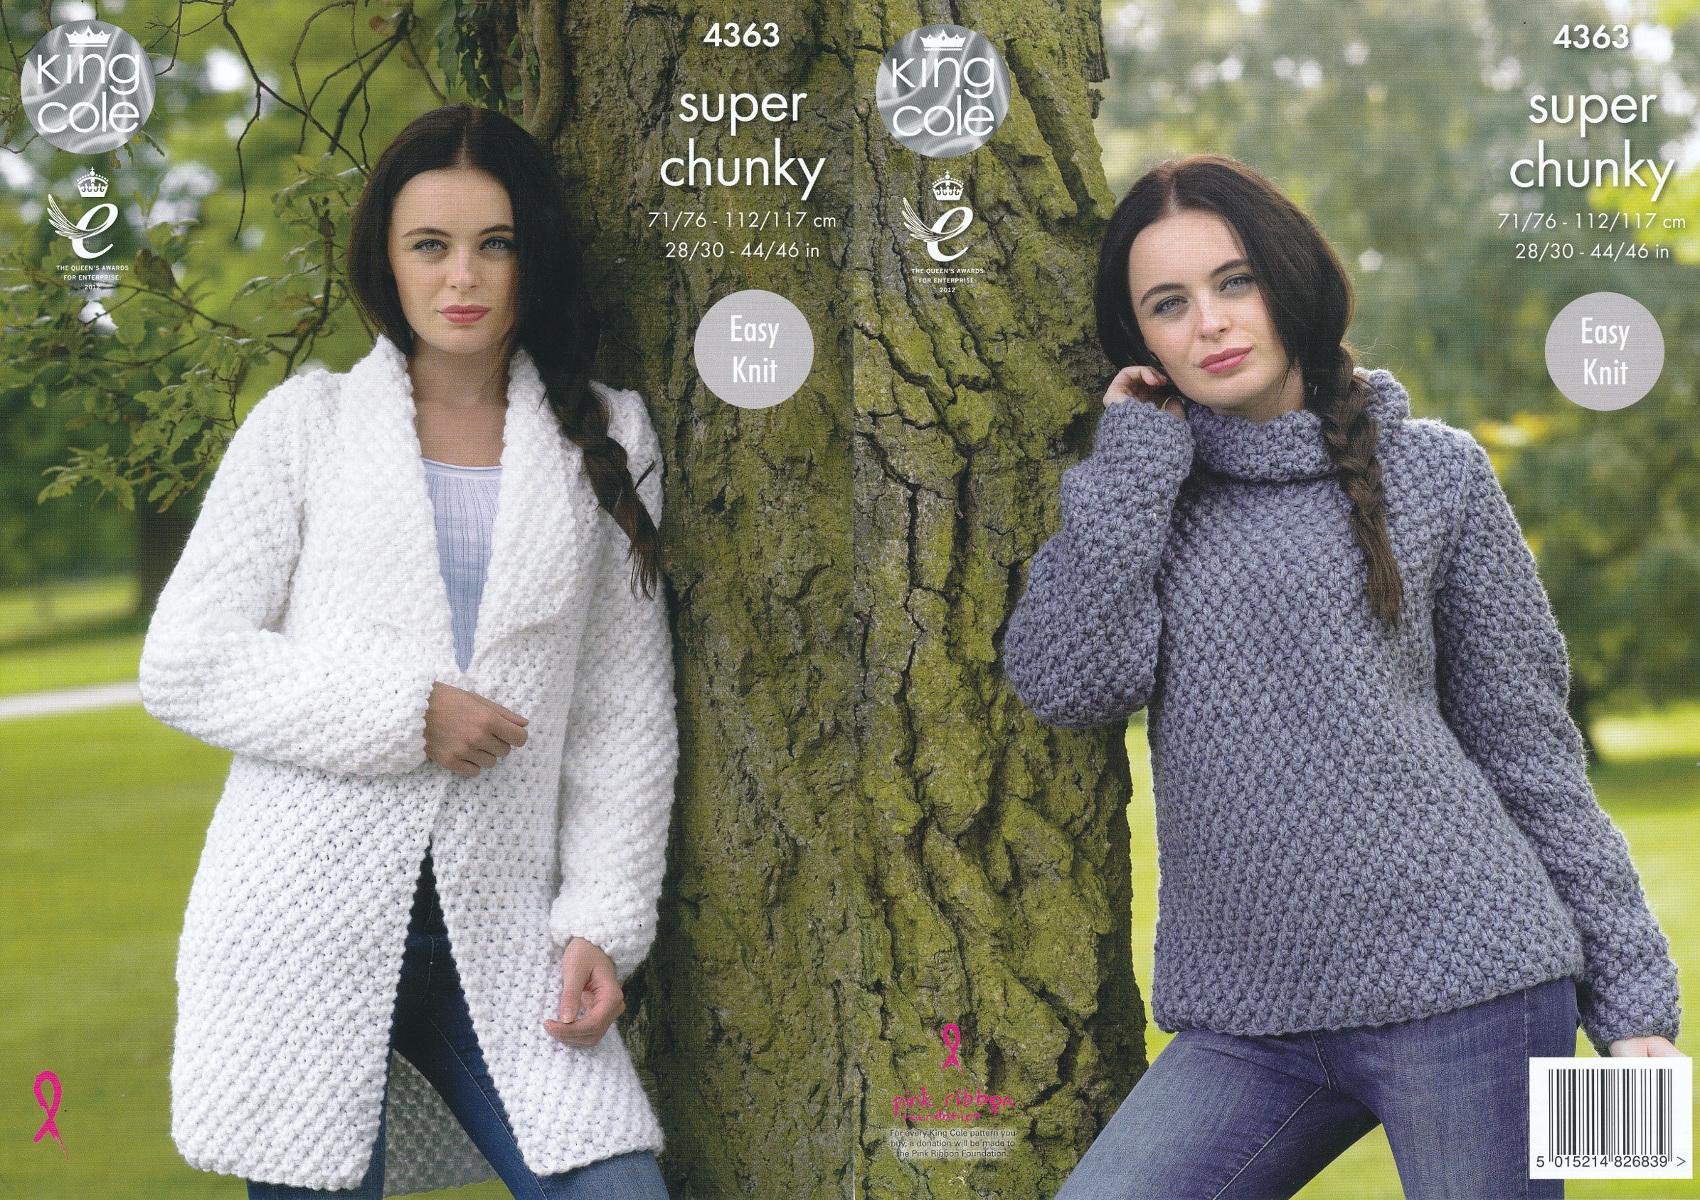 King Cole Ladies Super Chunky Knitting Pattern Jacket & Polo Neck ...